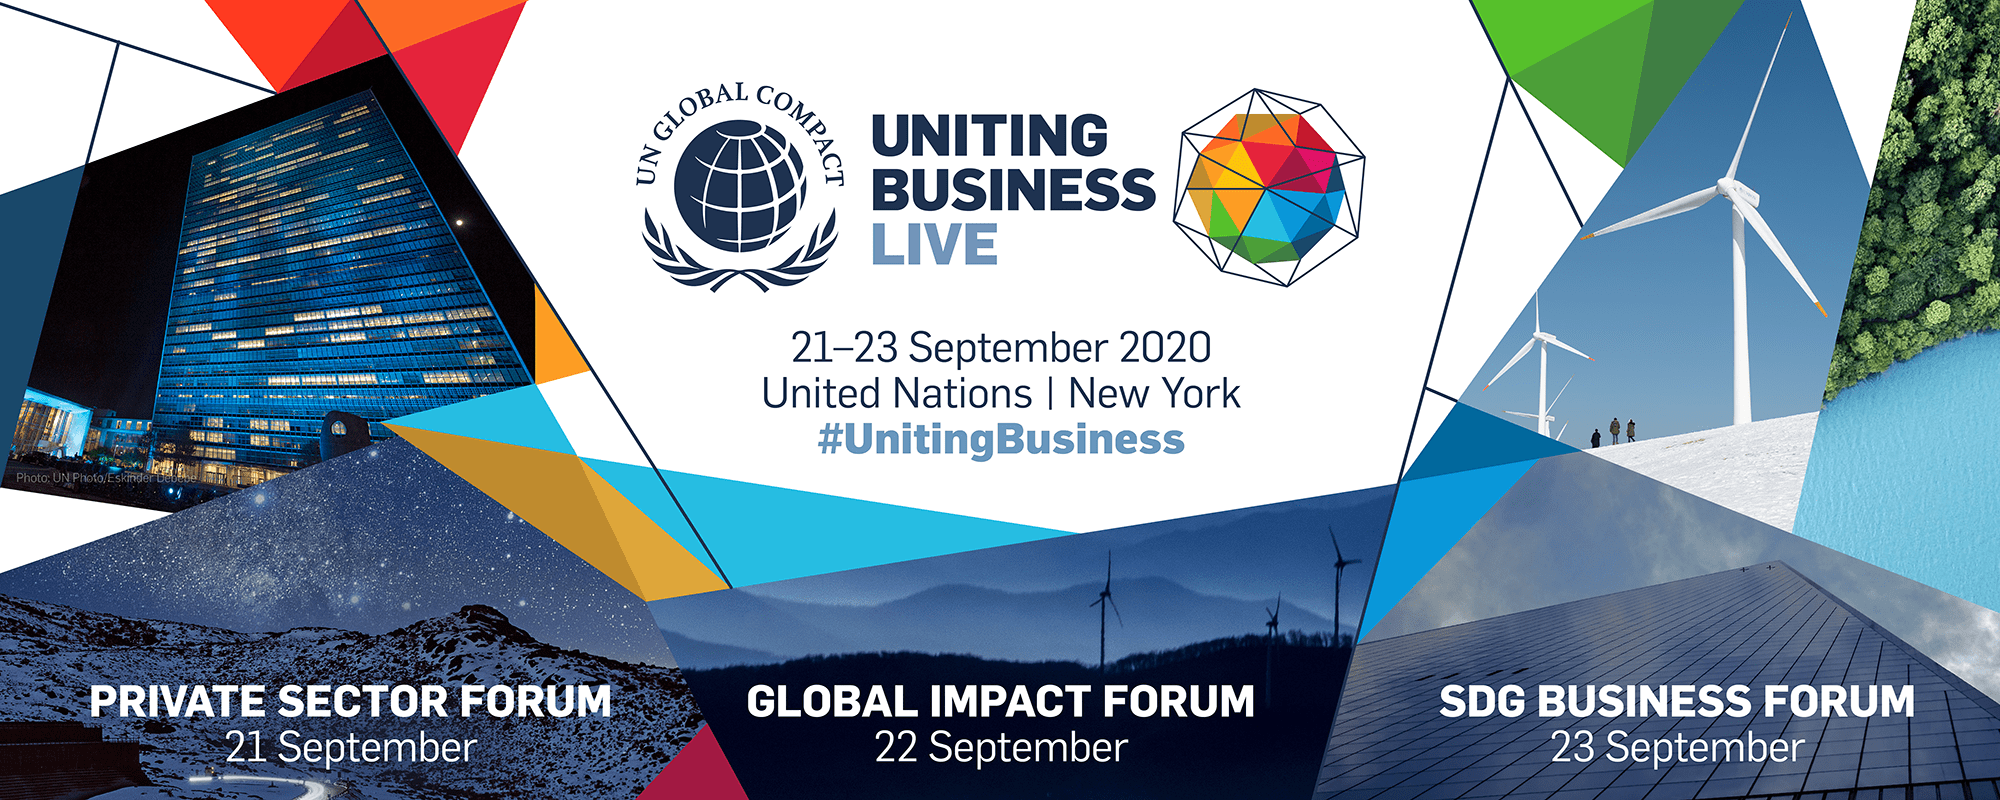 #UnitingBusiness LIVE UN General Assembly